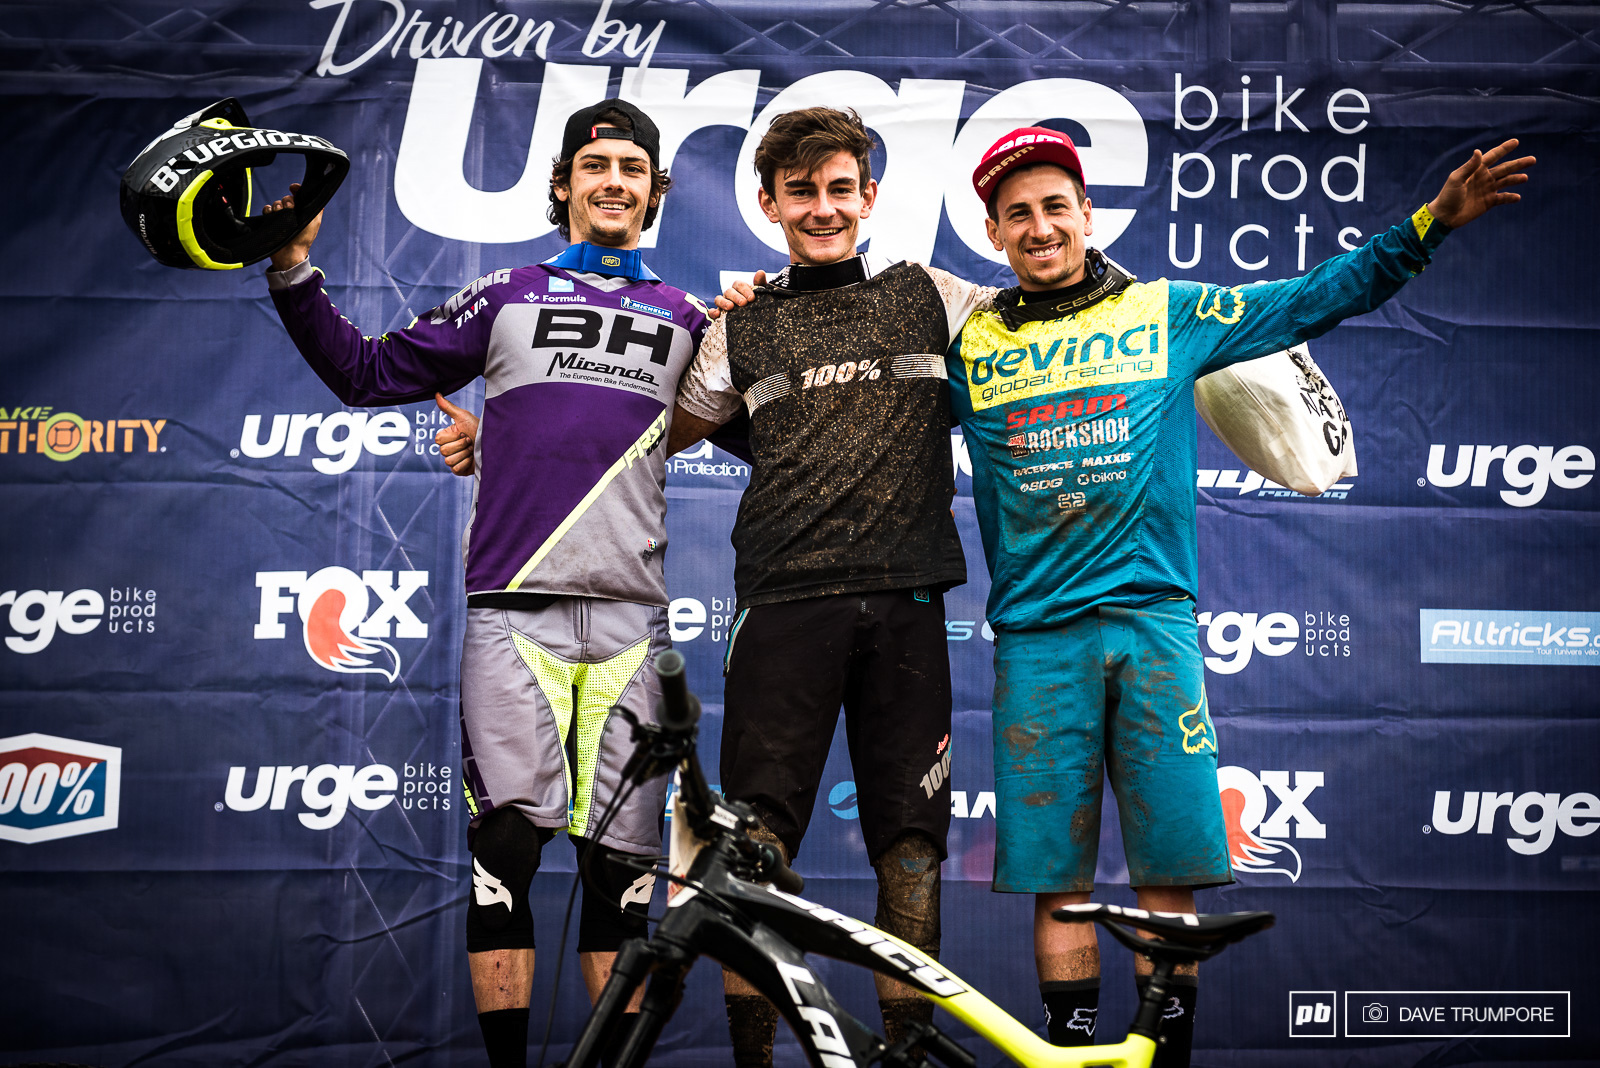 Adrien Dailly Alex Cure and Damian Oton round out the Men s podium.